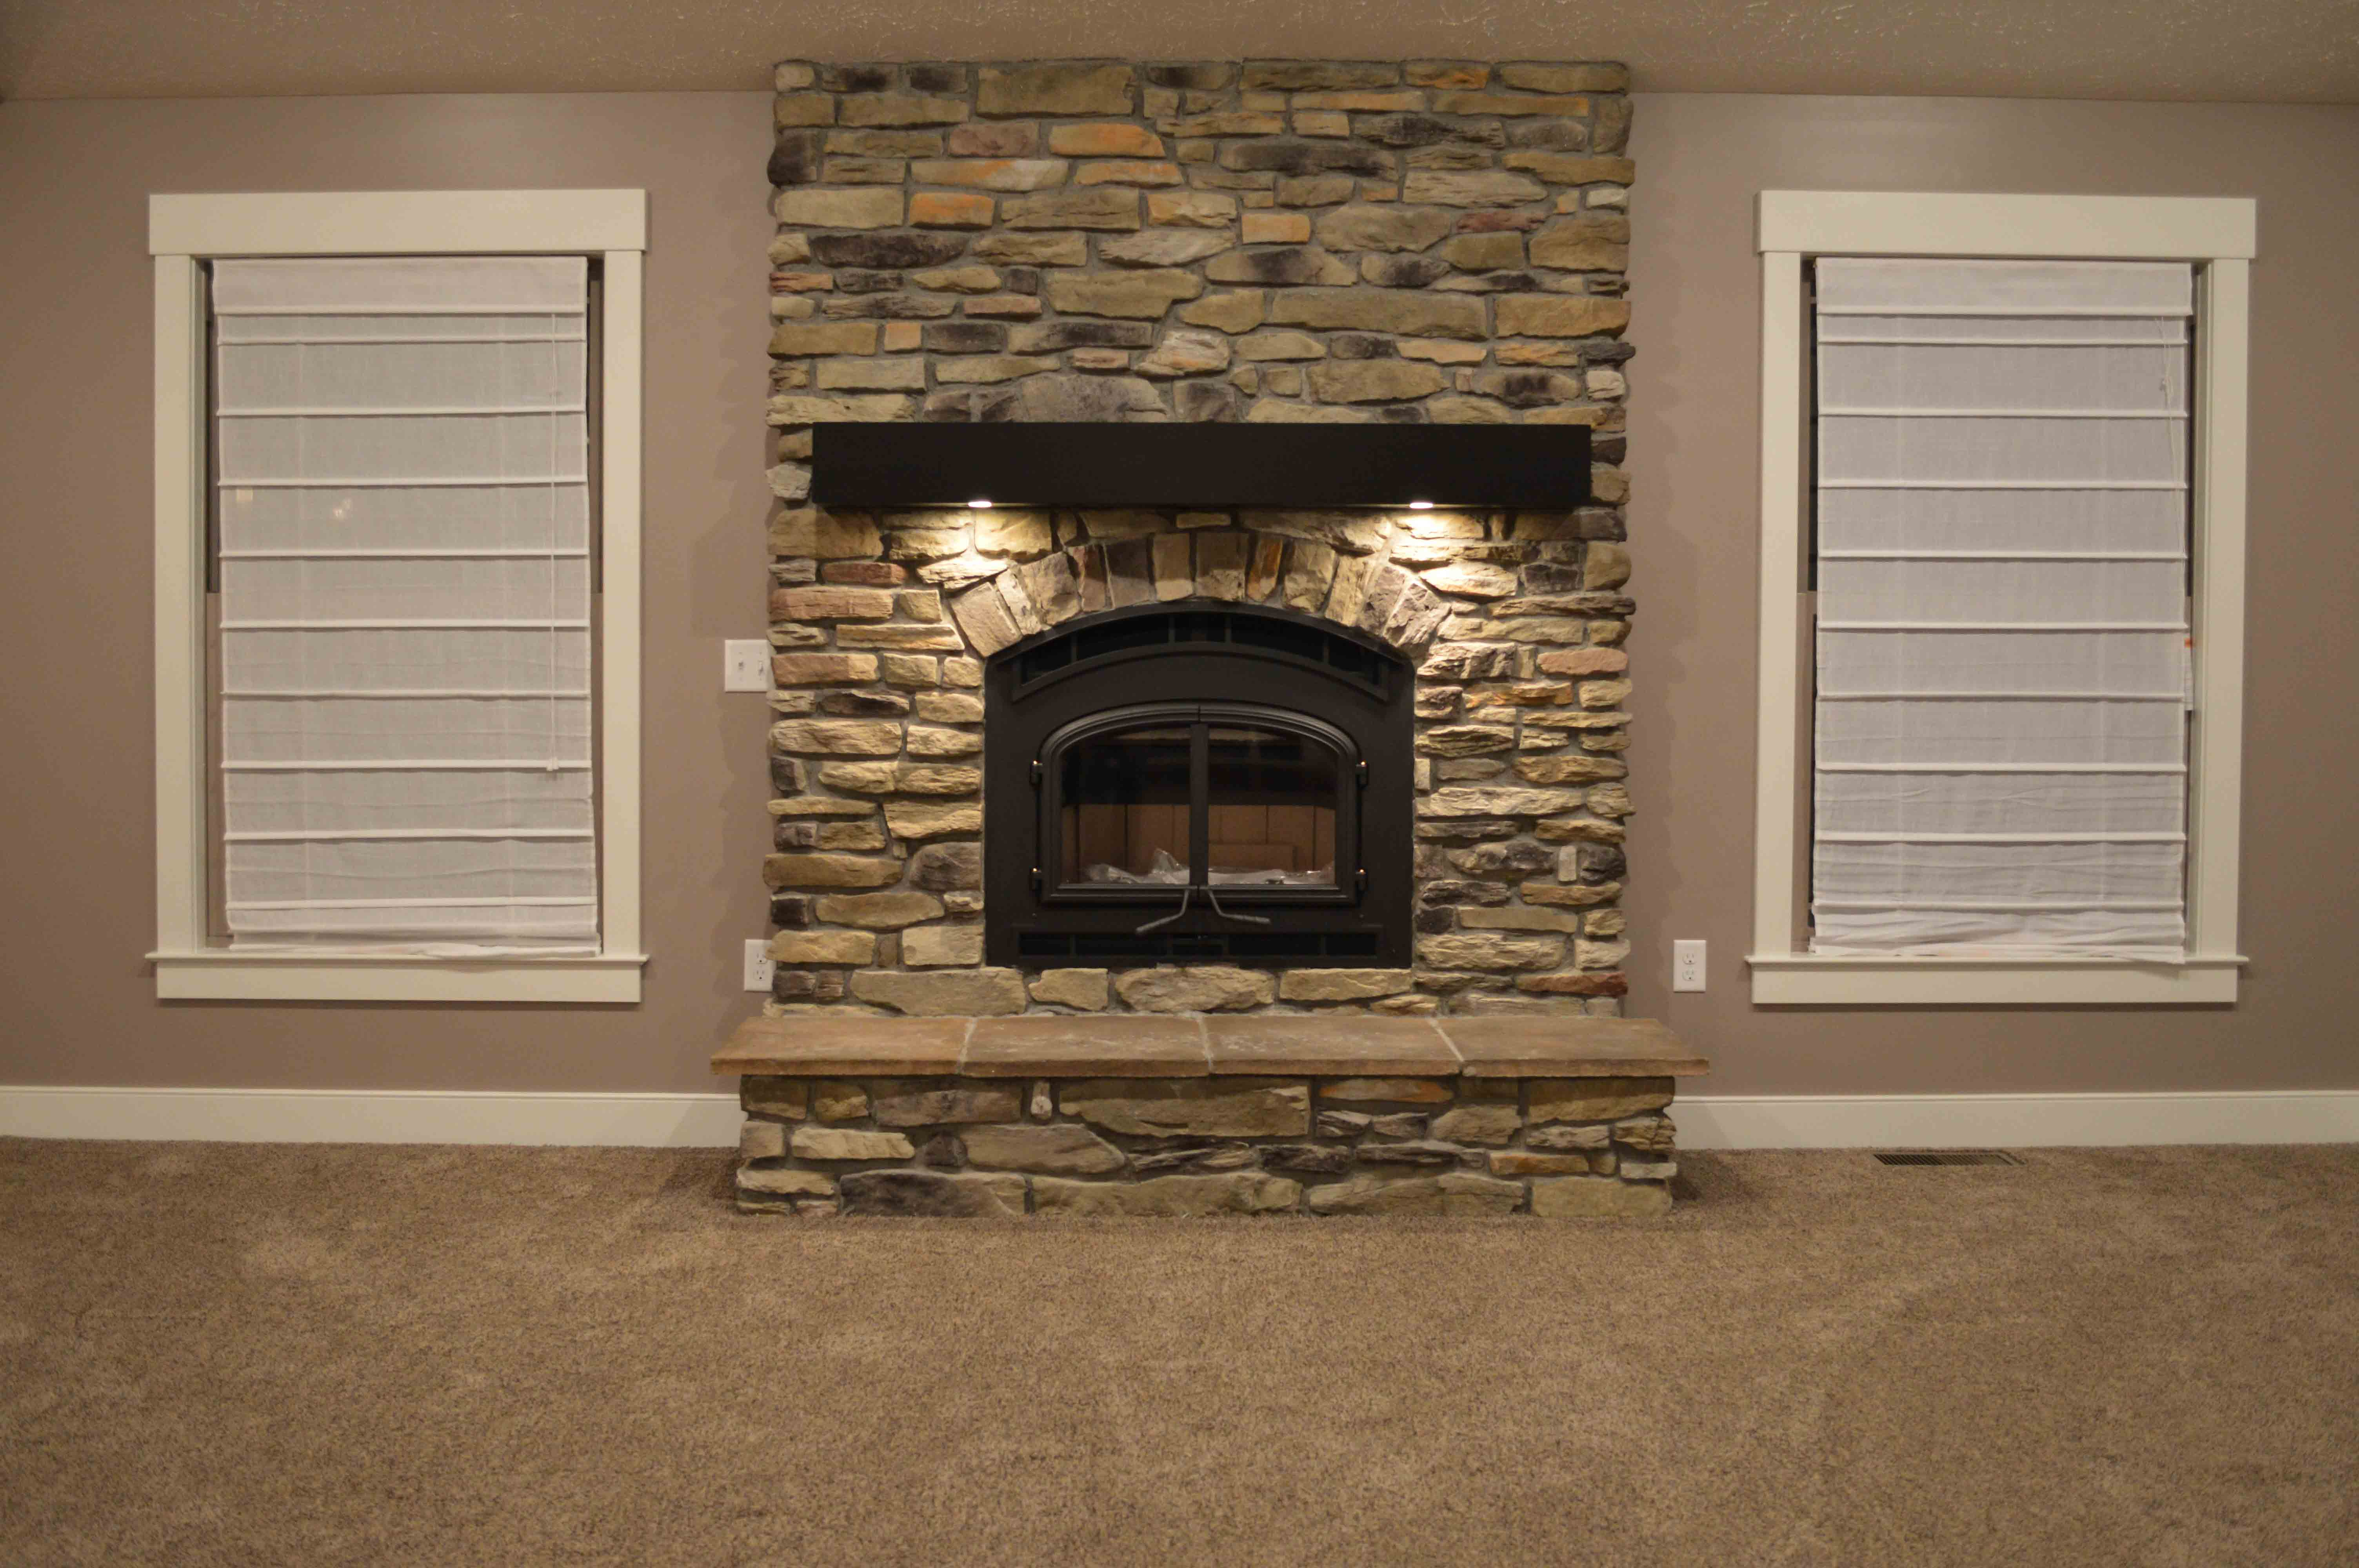 Wood burning fireplace with Sagewood Ledgestone and raised hearth. Mantle features accent lights